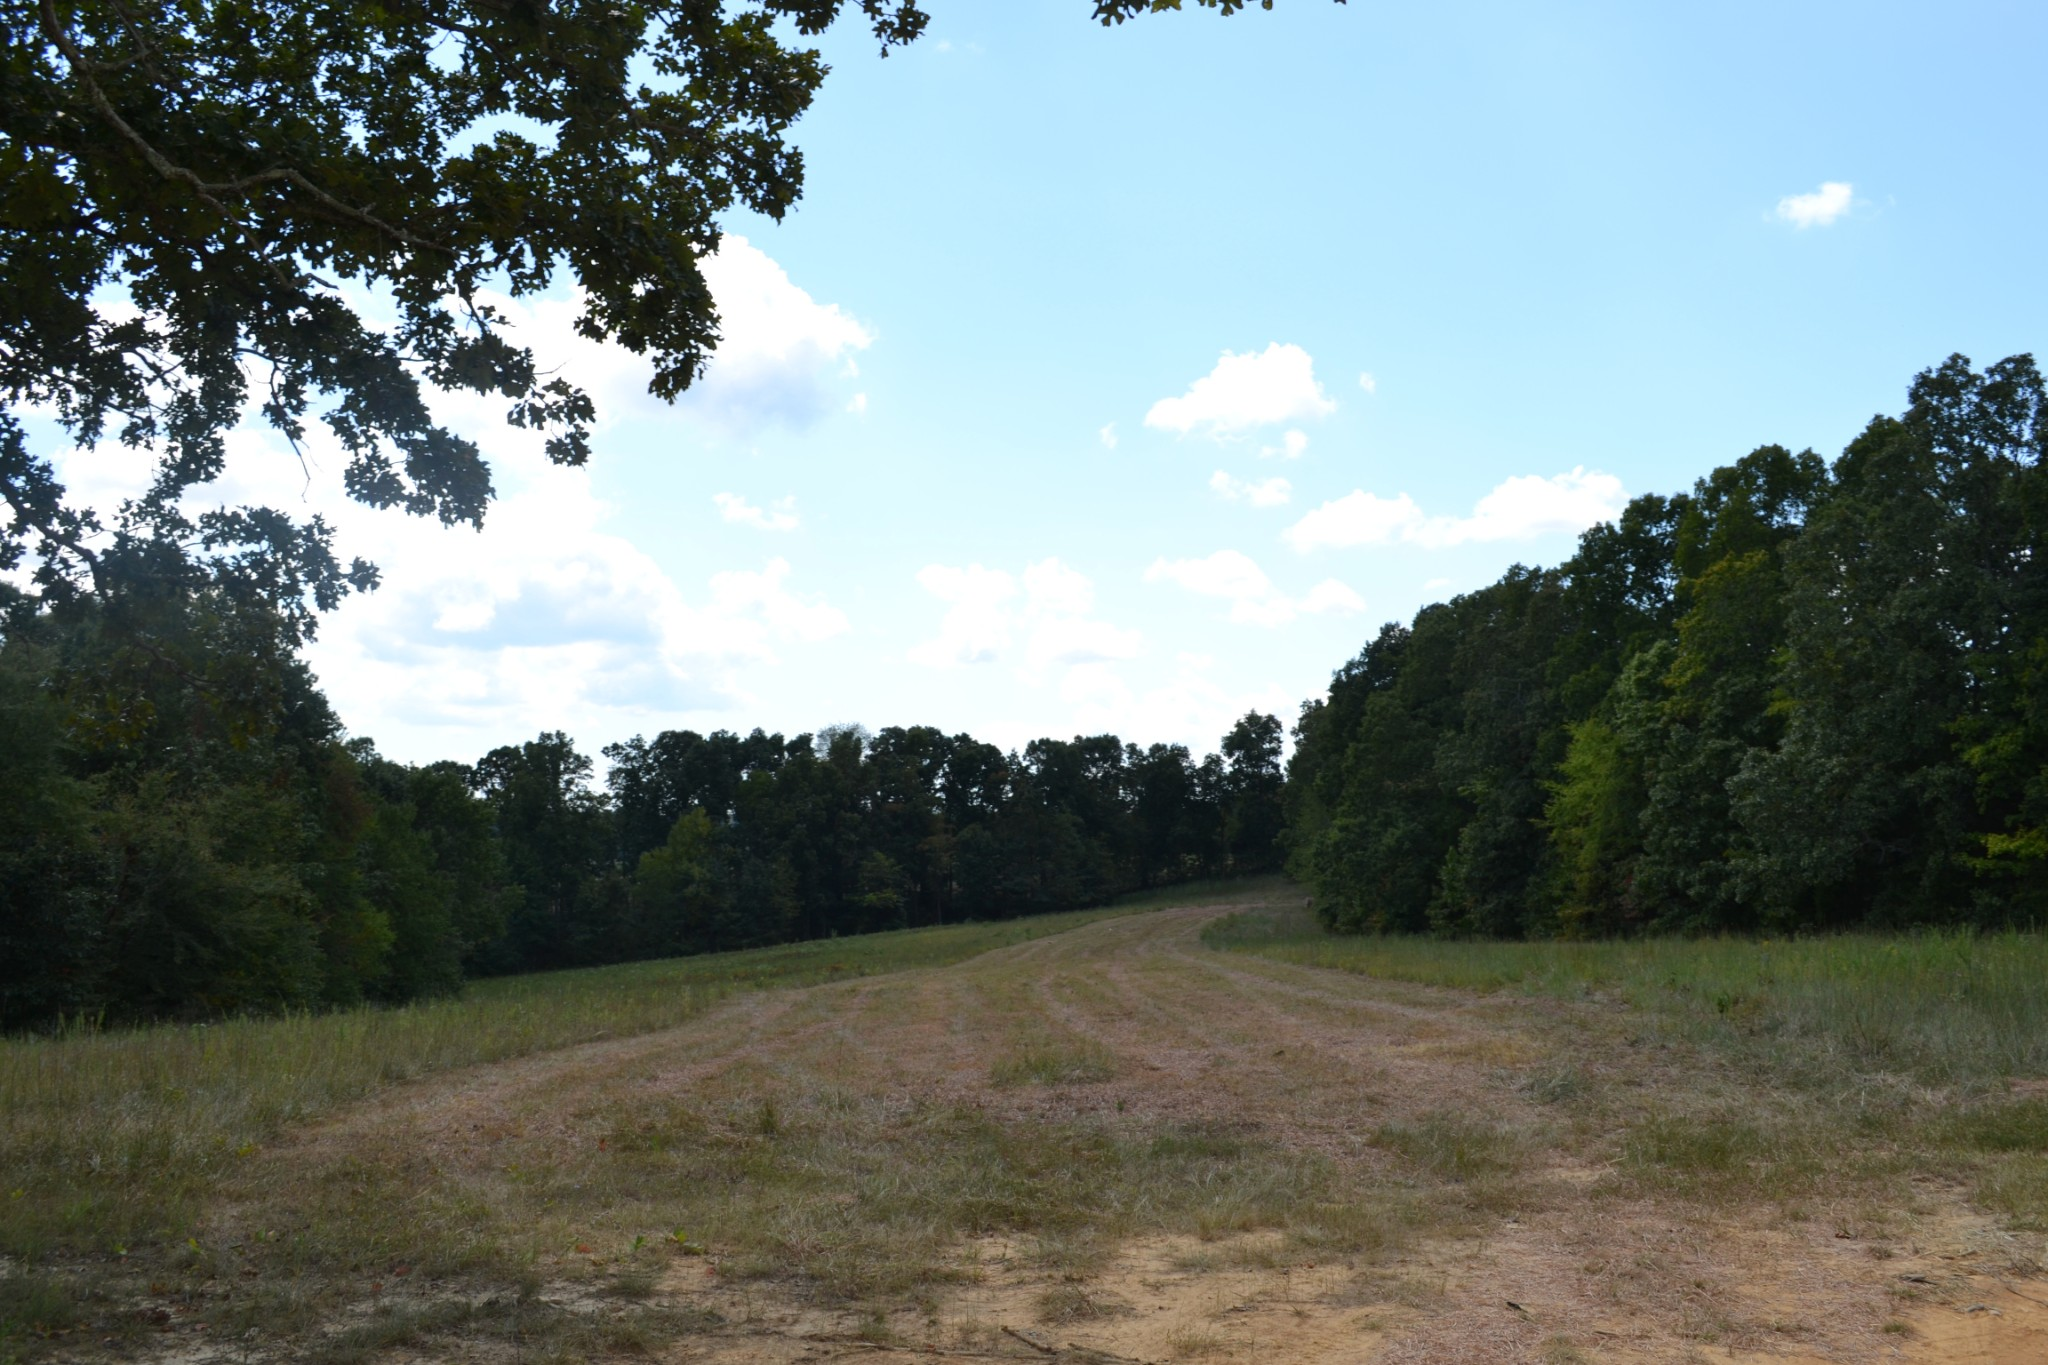 971 Robertson Rd - Tract 4, MC EWEN, TN 37101 - MC EWEN, TN real estate listing